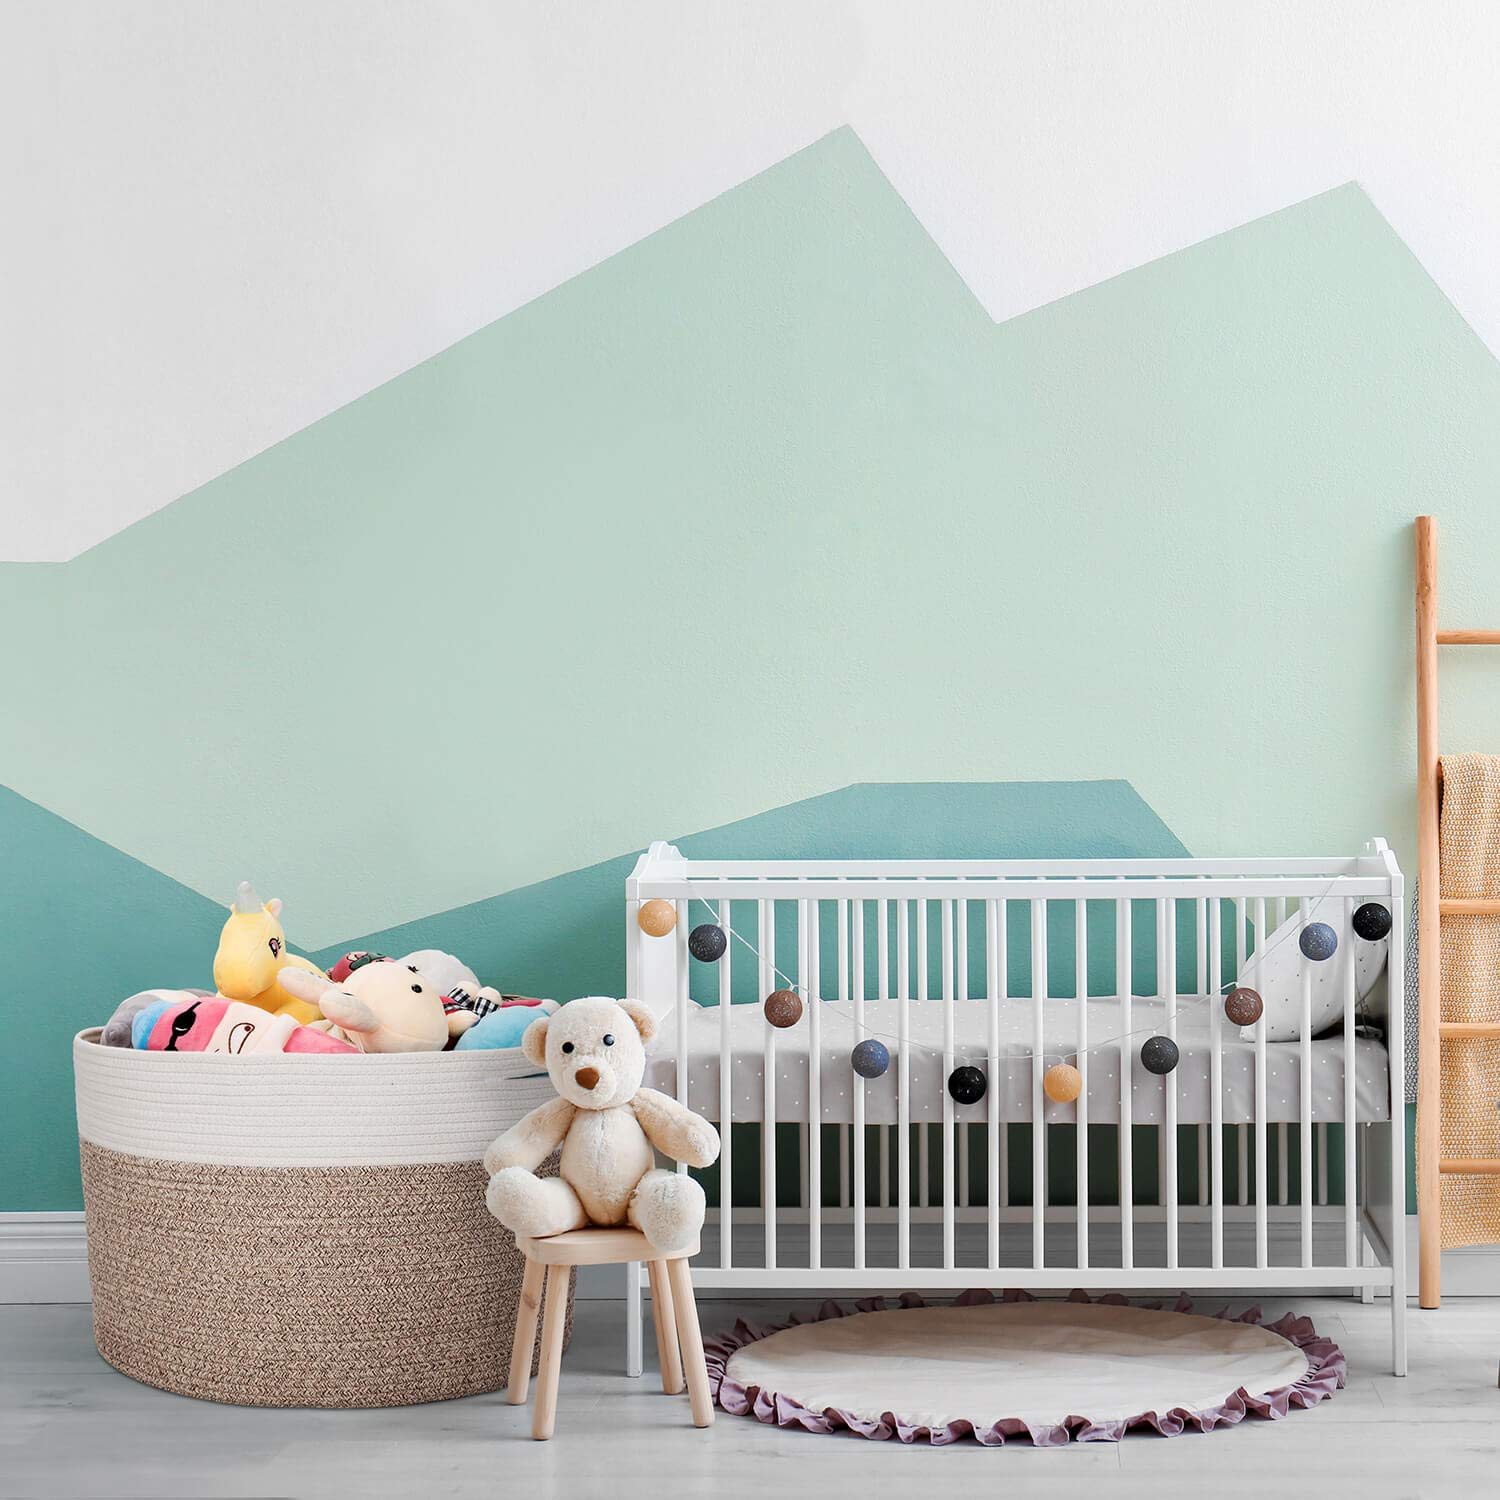 kid's room with a crib, toy basket, and other decorations